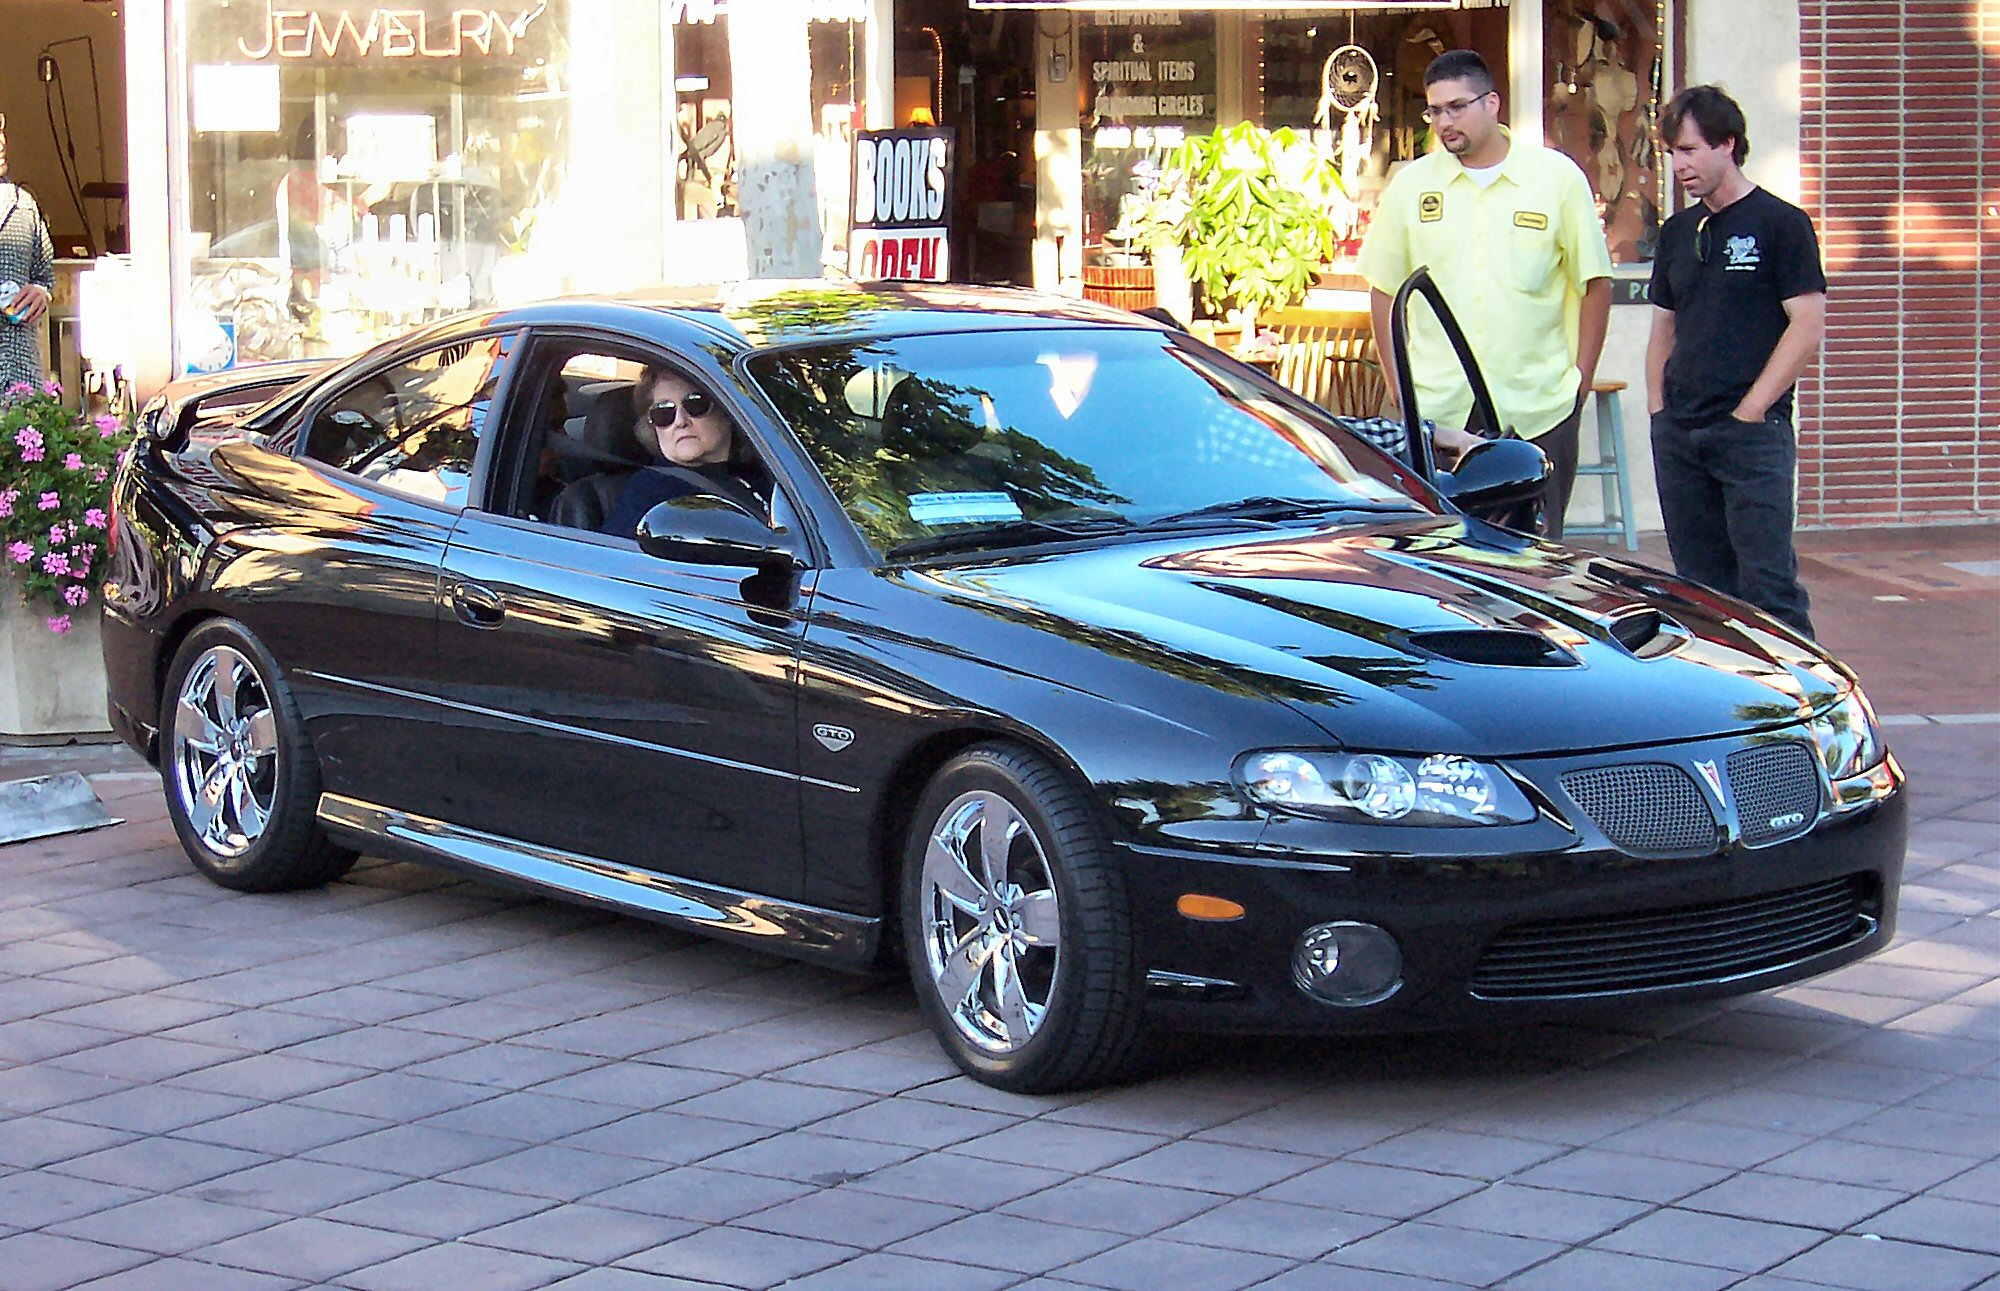 https://i1.wp.com/upload.wikimedia.org/wikipedia/commons/c/c4/2005_Pontiac_GTO.jpg